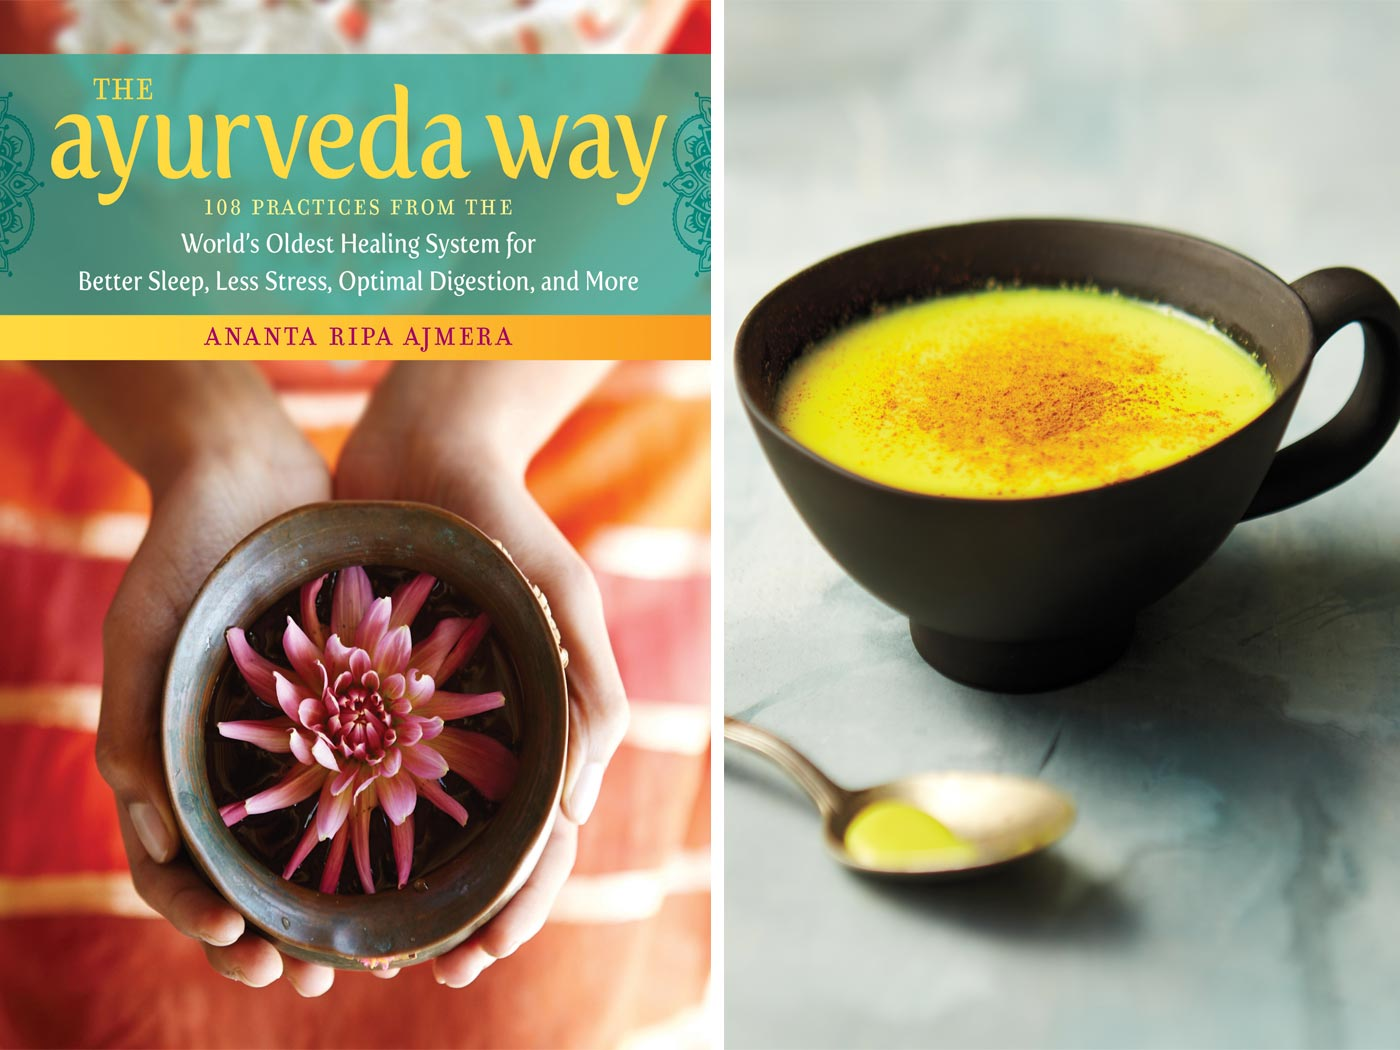 City Style and Living Magazine Ayurveda way Spiced Milk